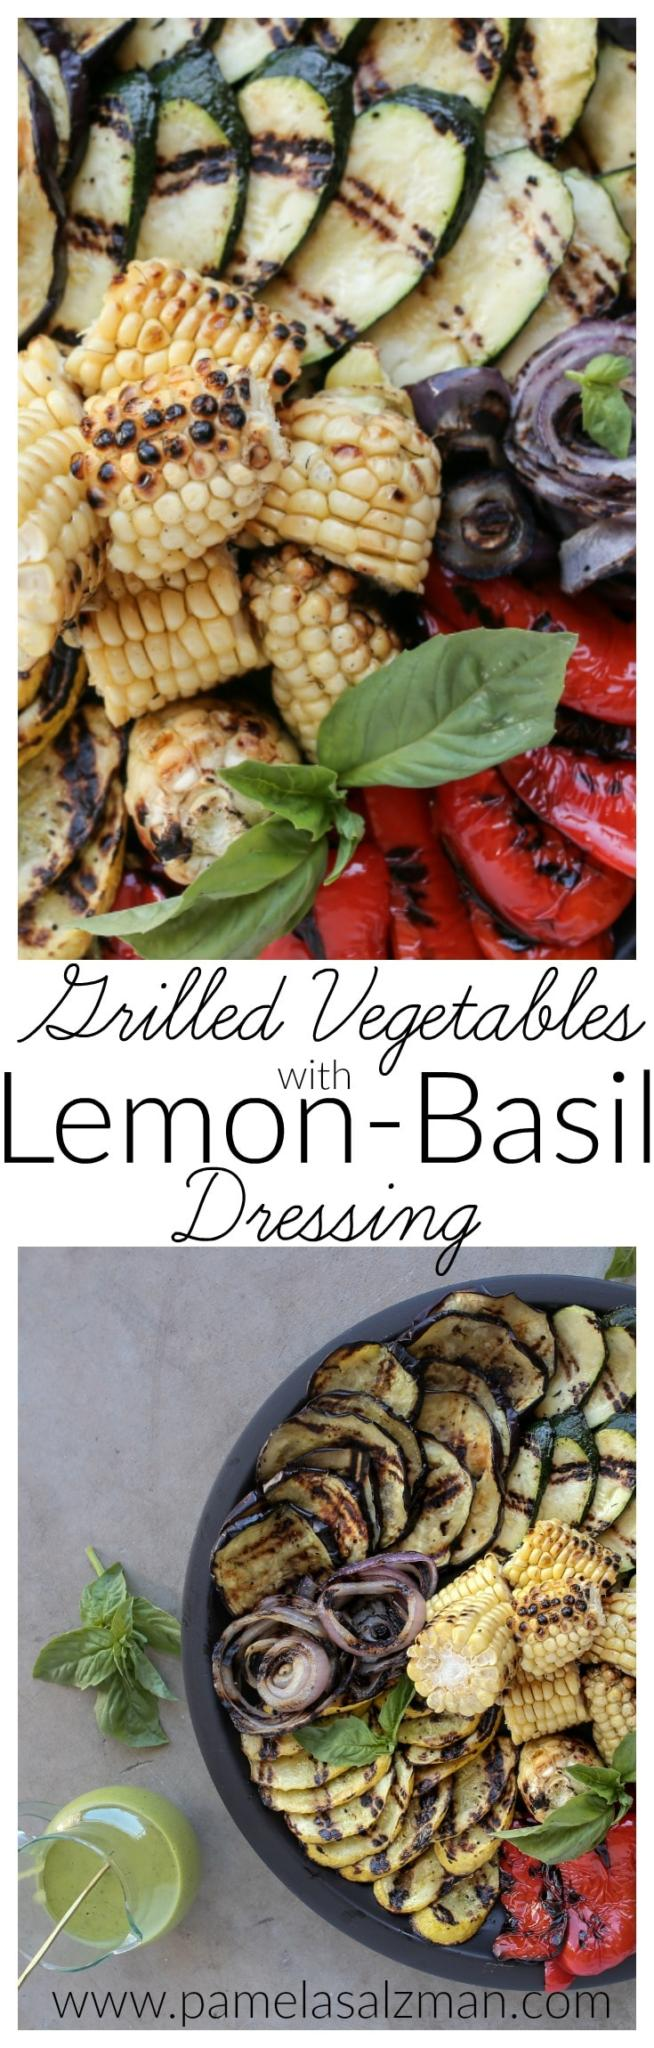 Grilled Vegetables with Lemon-Basil Dressing | Pamela Salzman